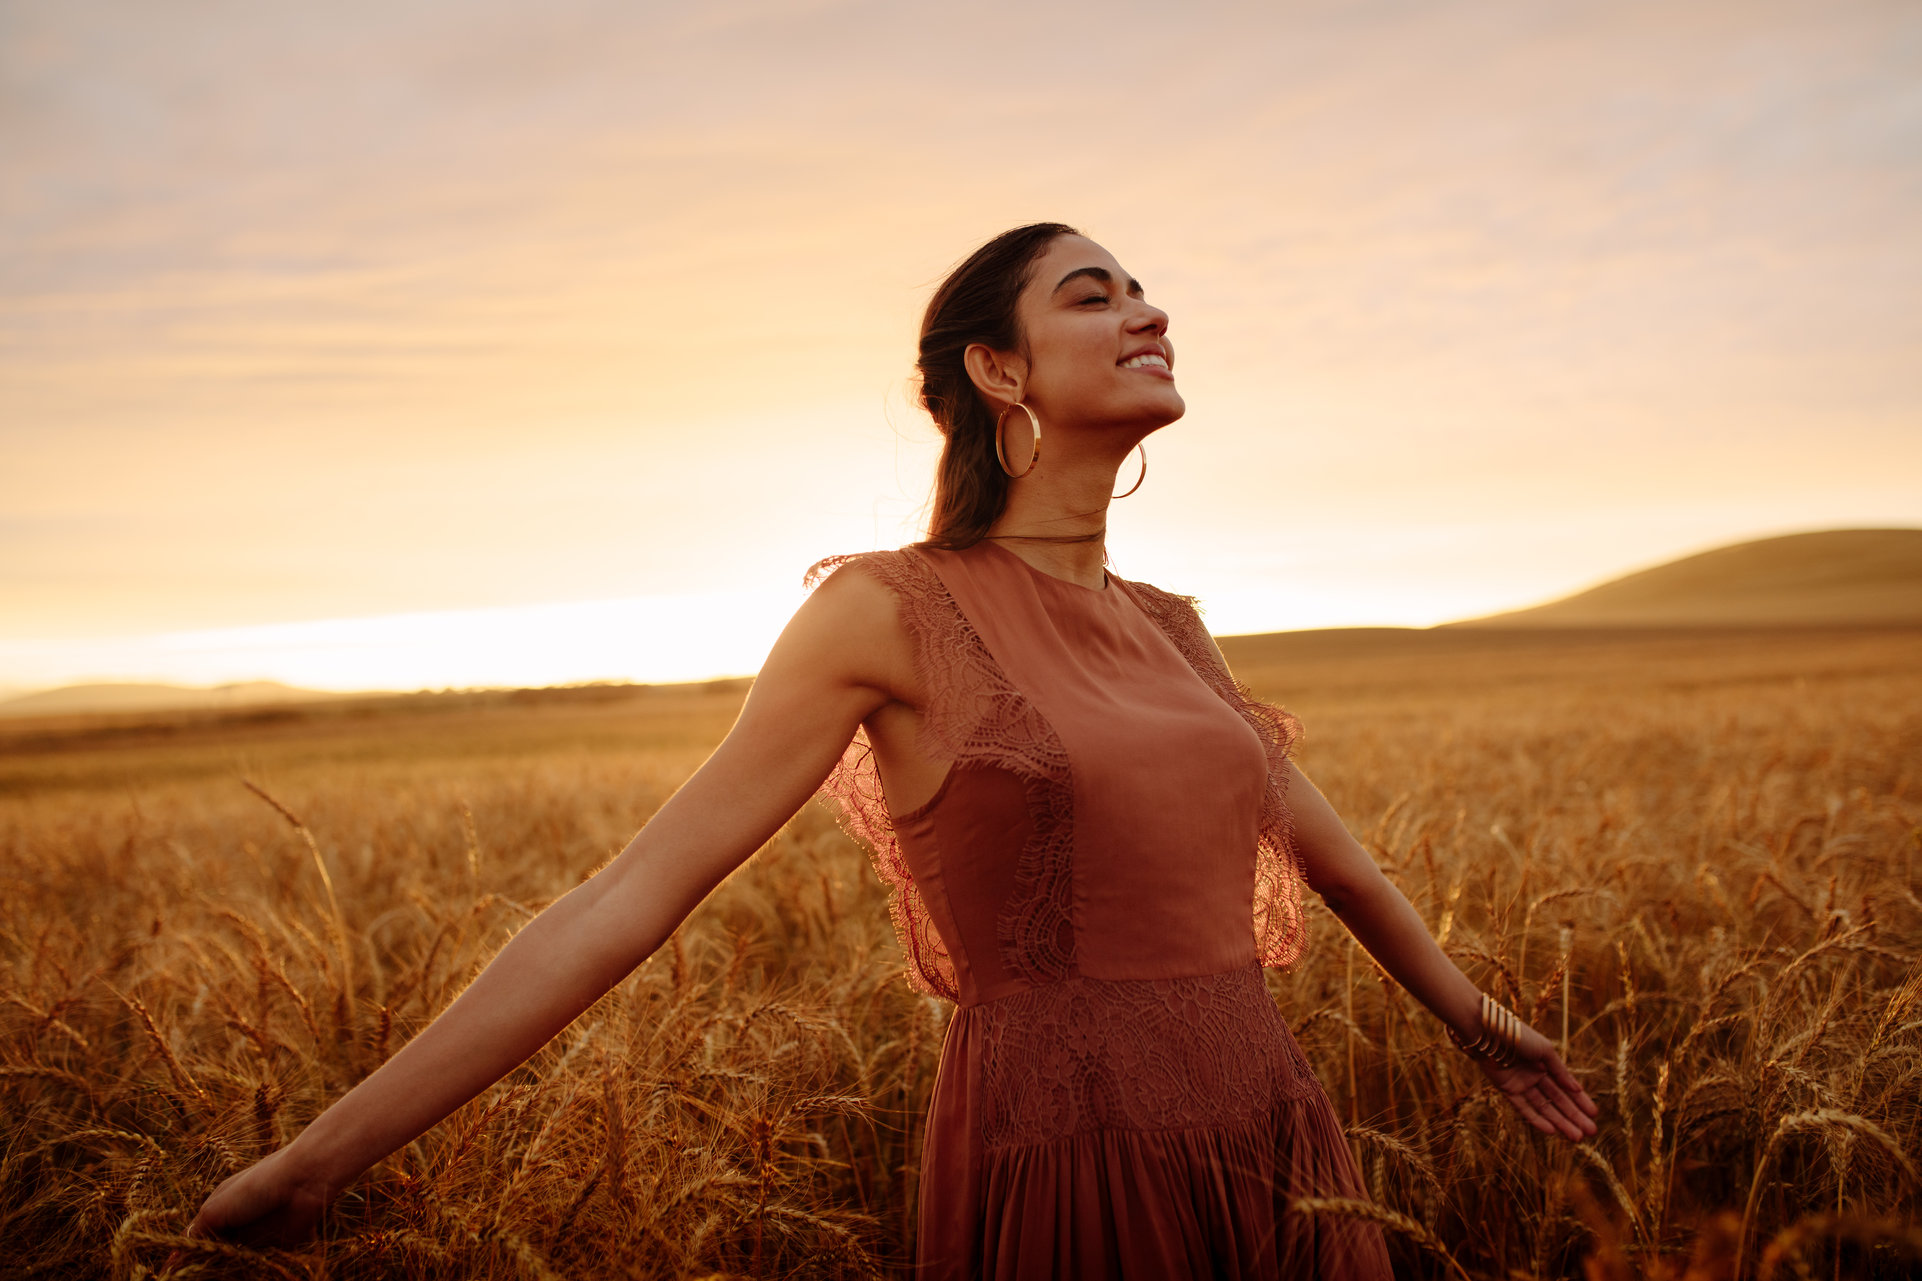 Uncover the True Process of Manifesting From Your Higher Self